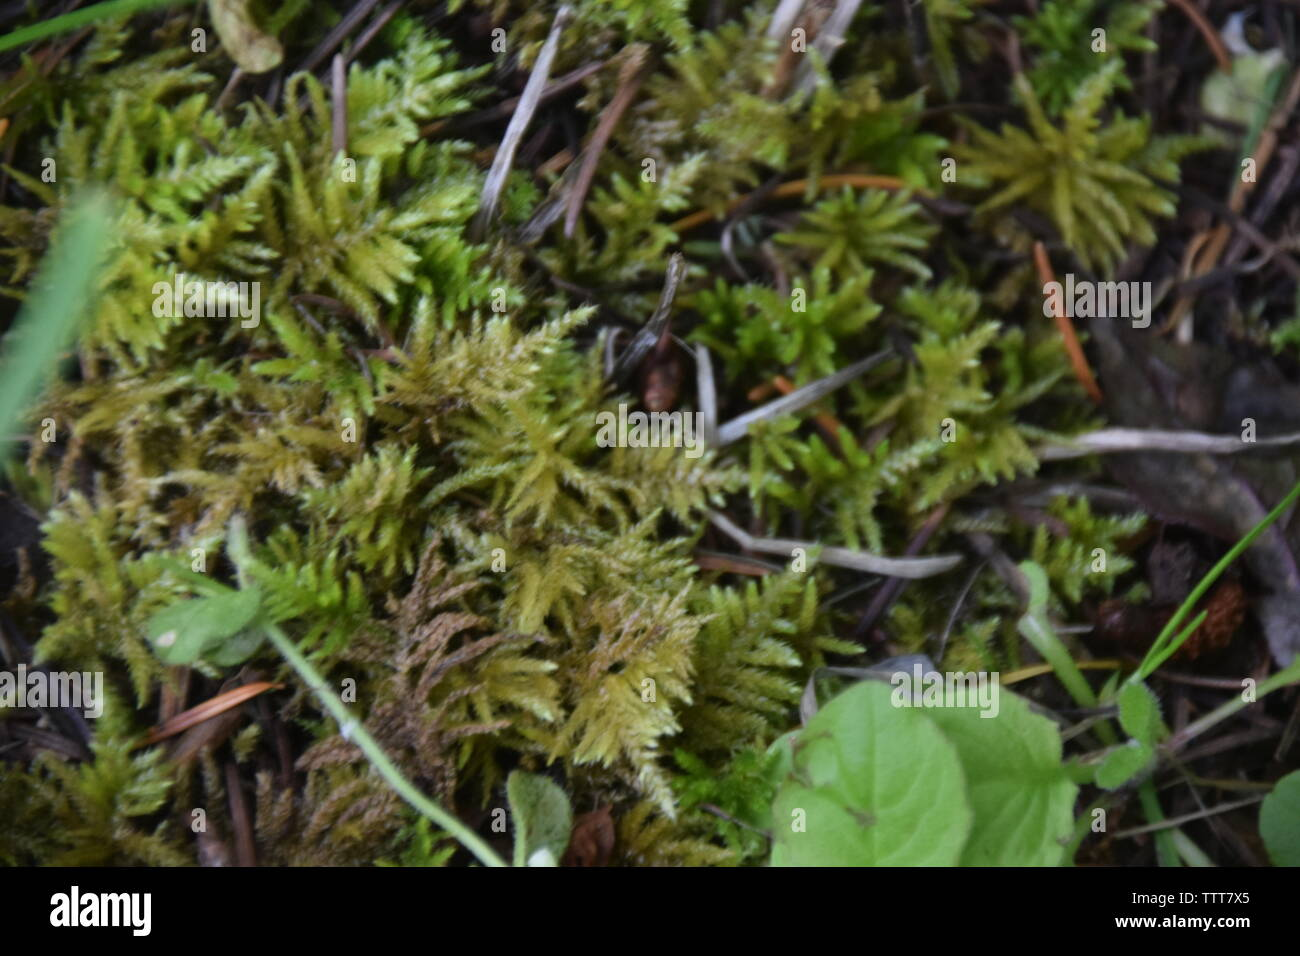 Moss growing on the forest floor Stock Photo